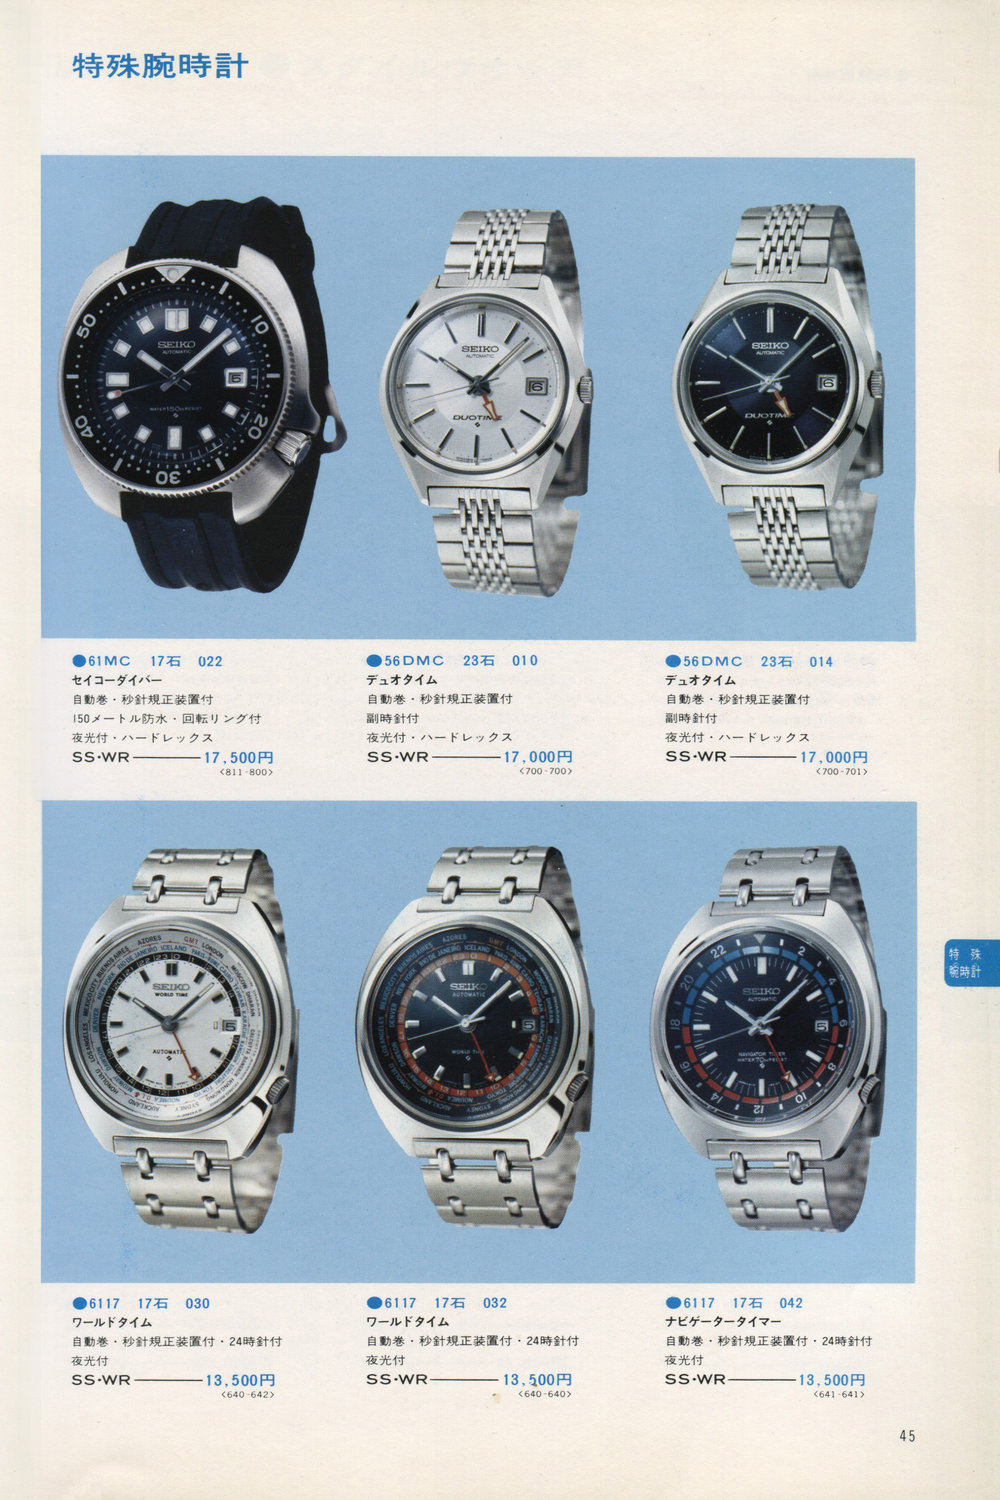 1973 Vol.2 Seiko JDM Catalog